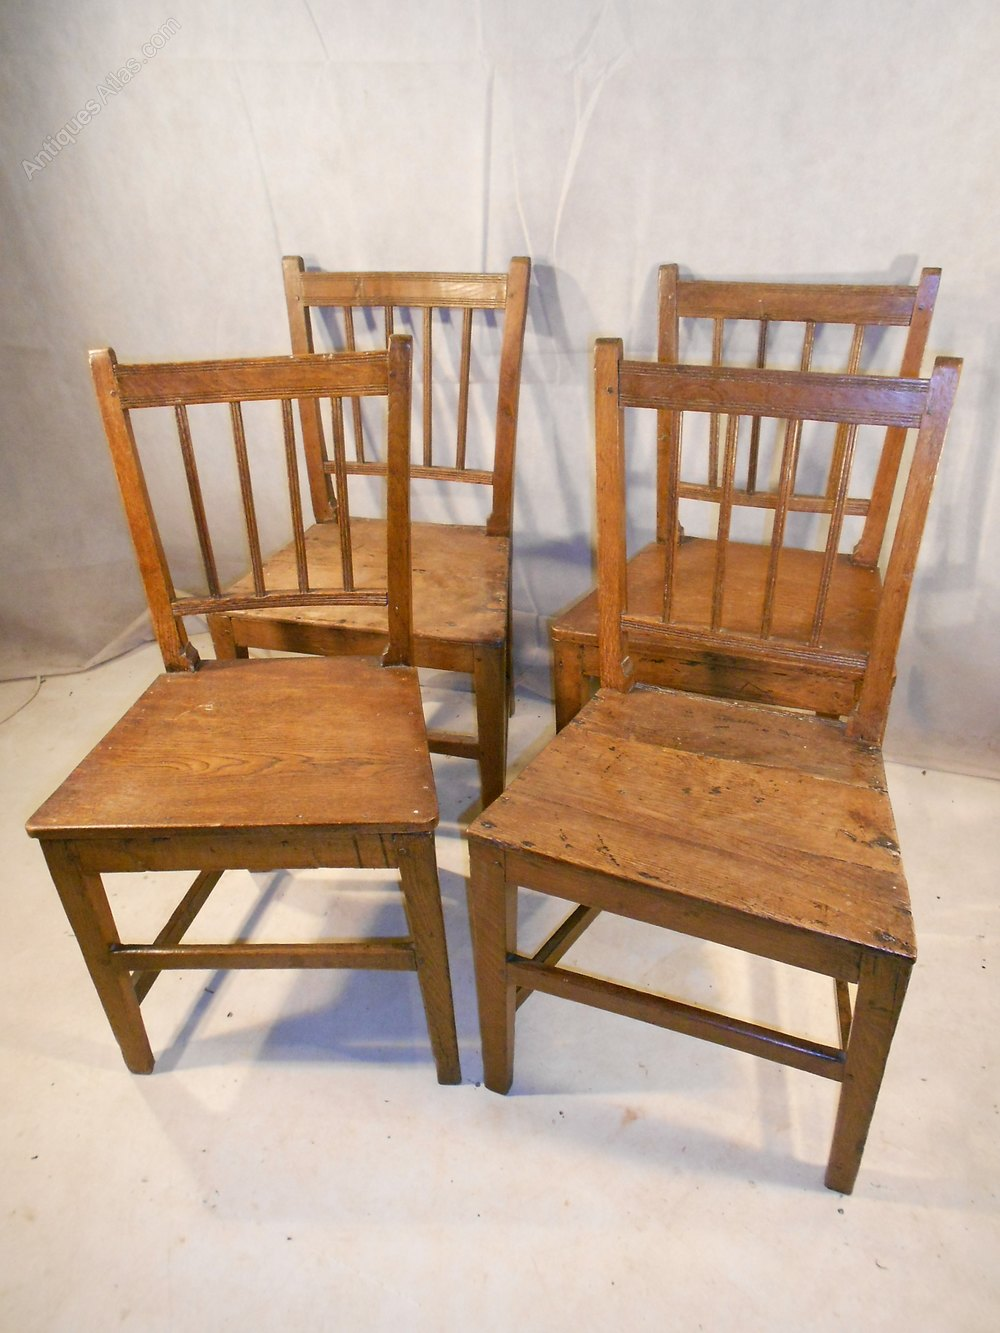 Antique Georgian Vernacular Country Chairs ... - Antique Georgian Vernacular Country Chairs - Antiques Atlas